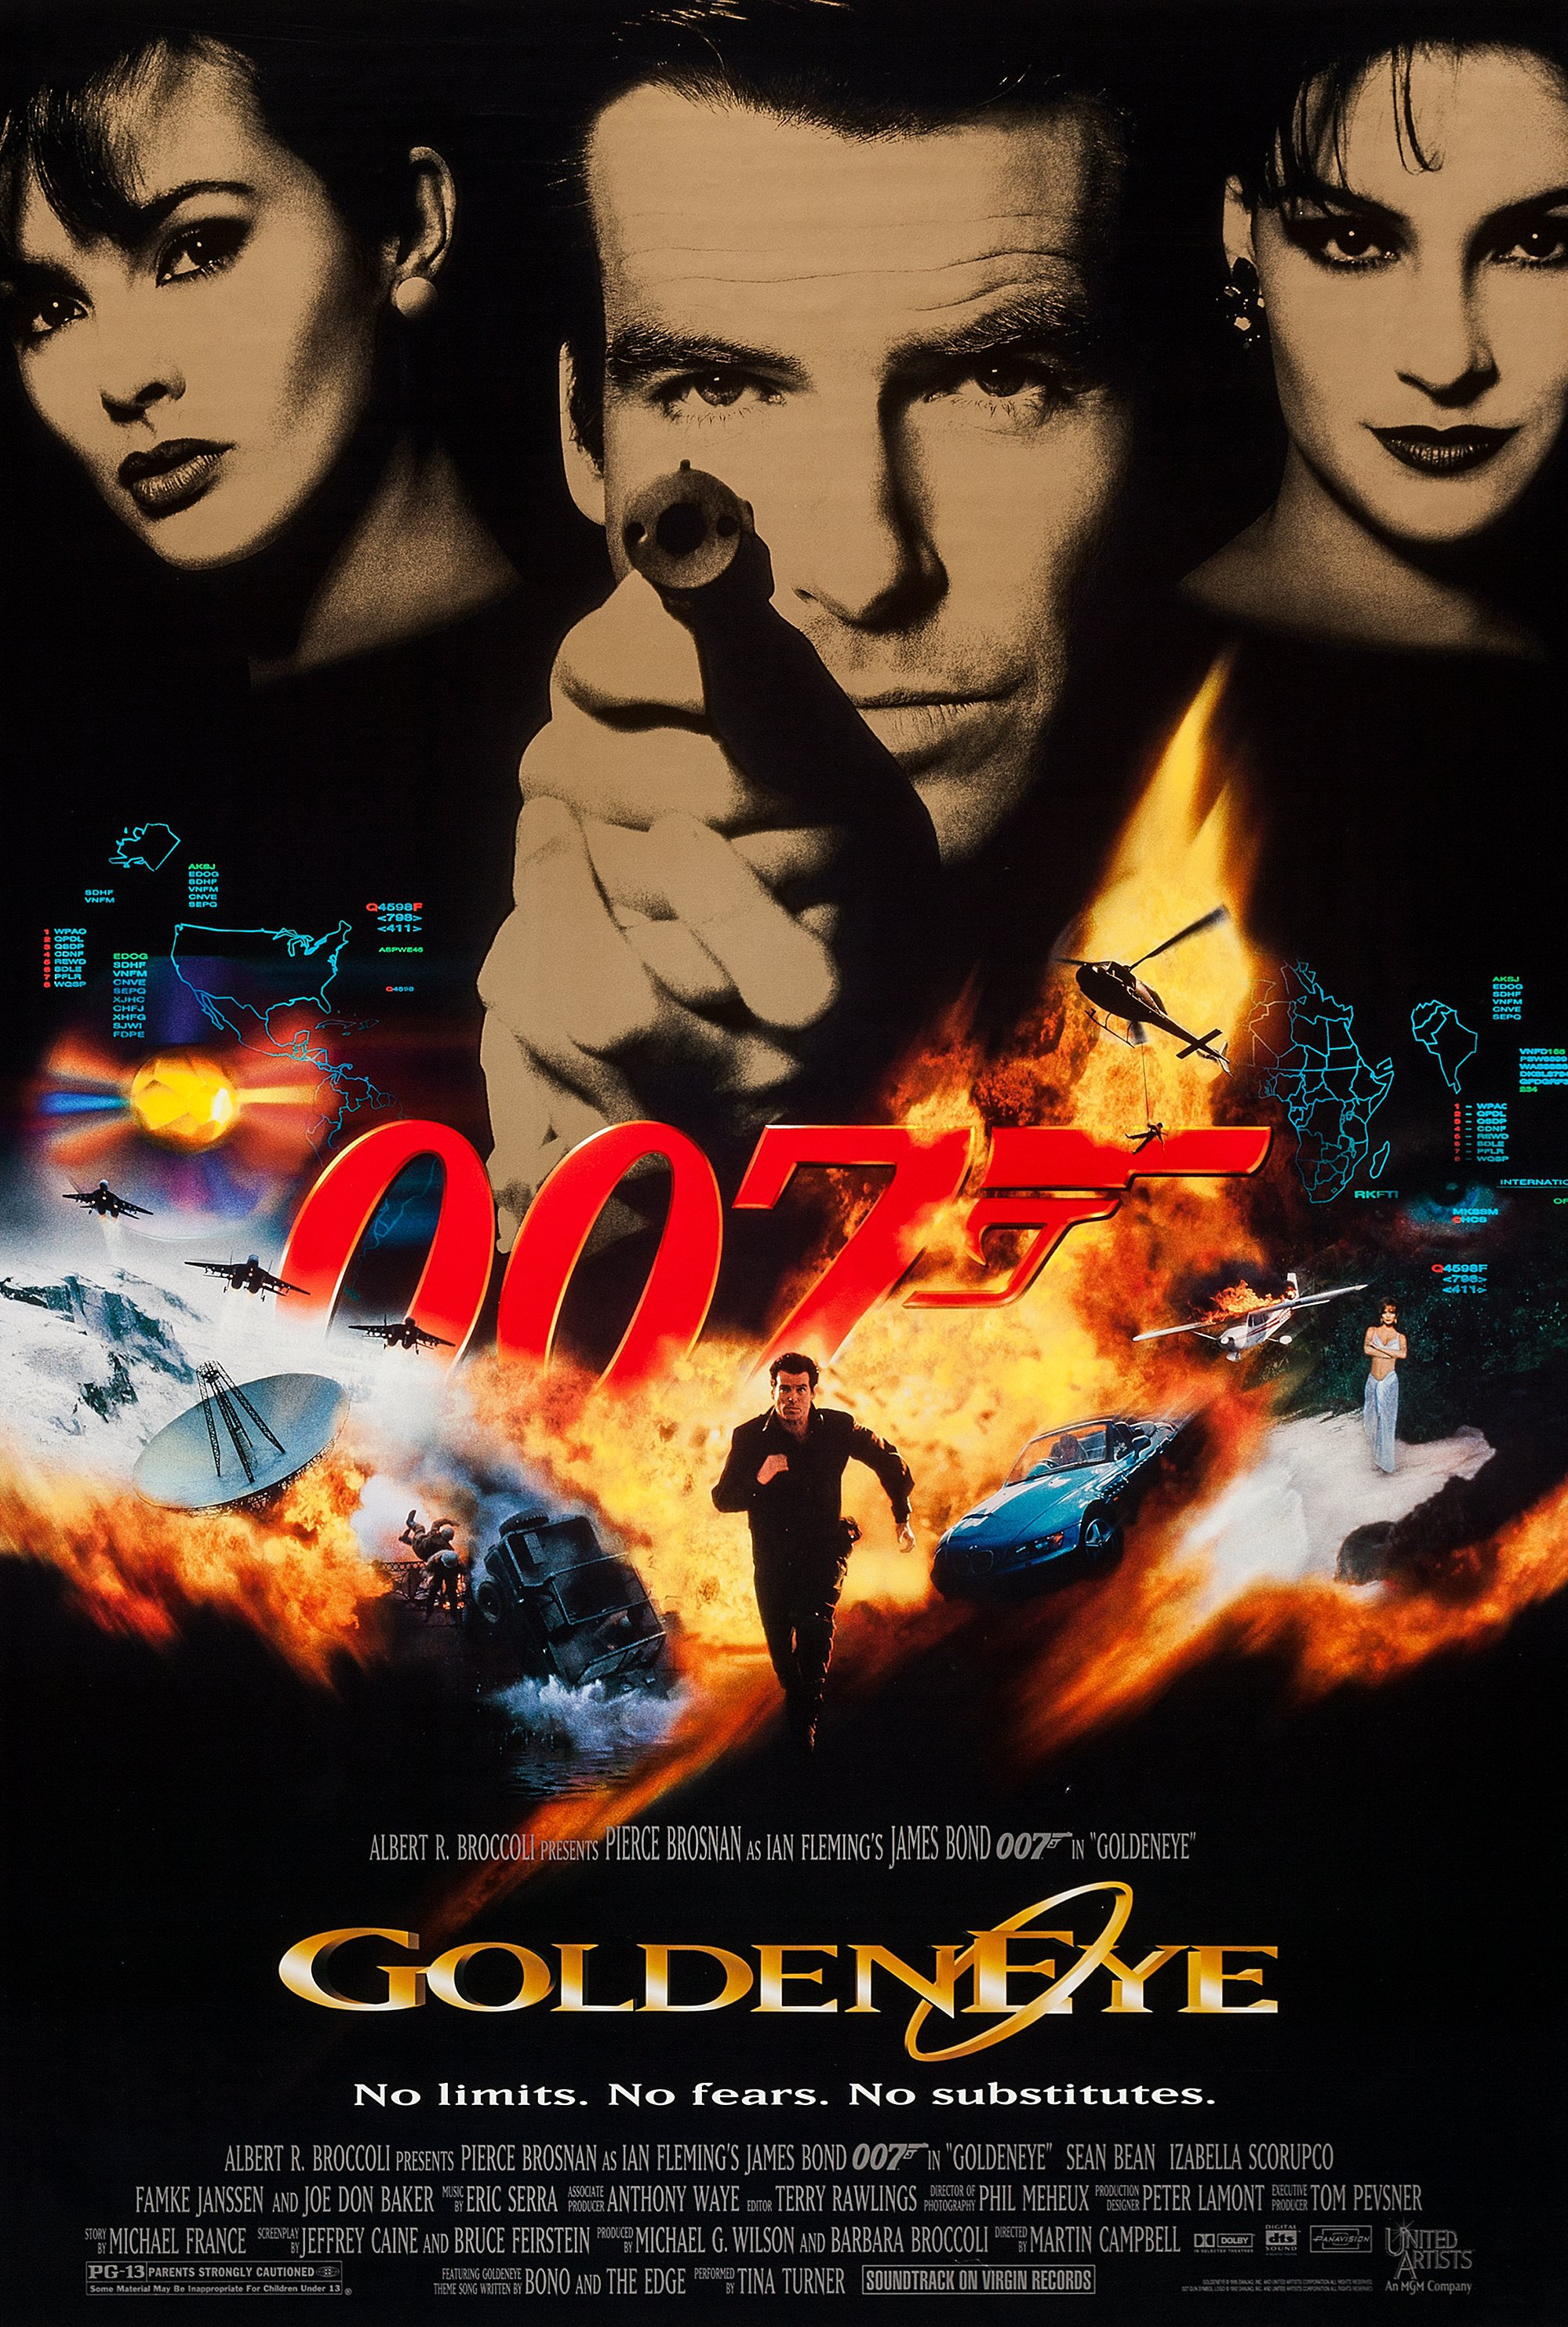 Goldeneye movie posterGoldeneye Movie Poster